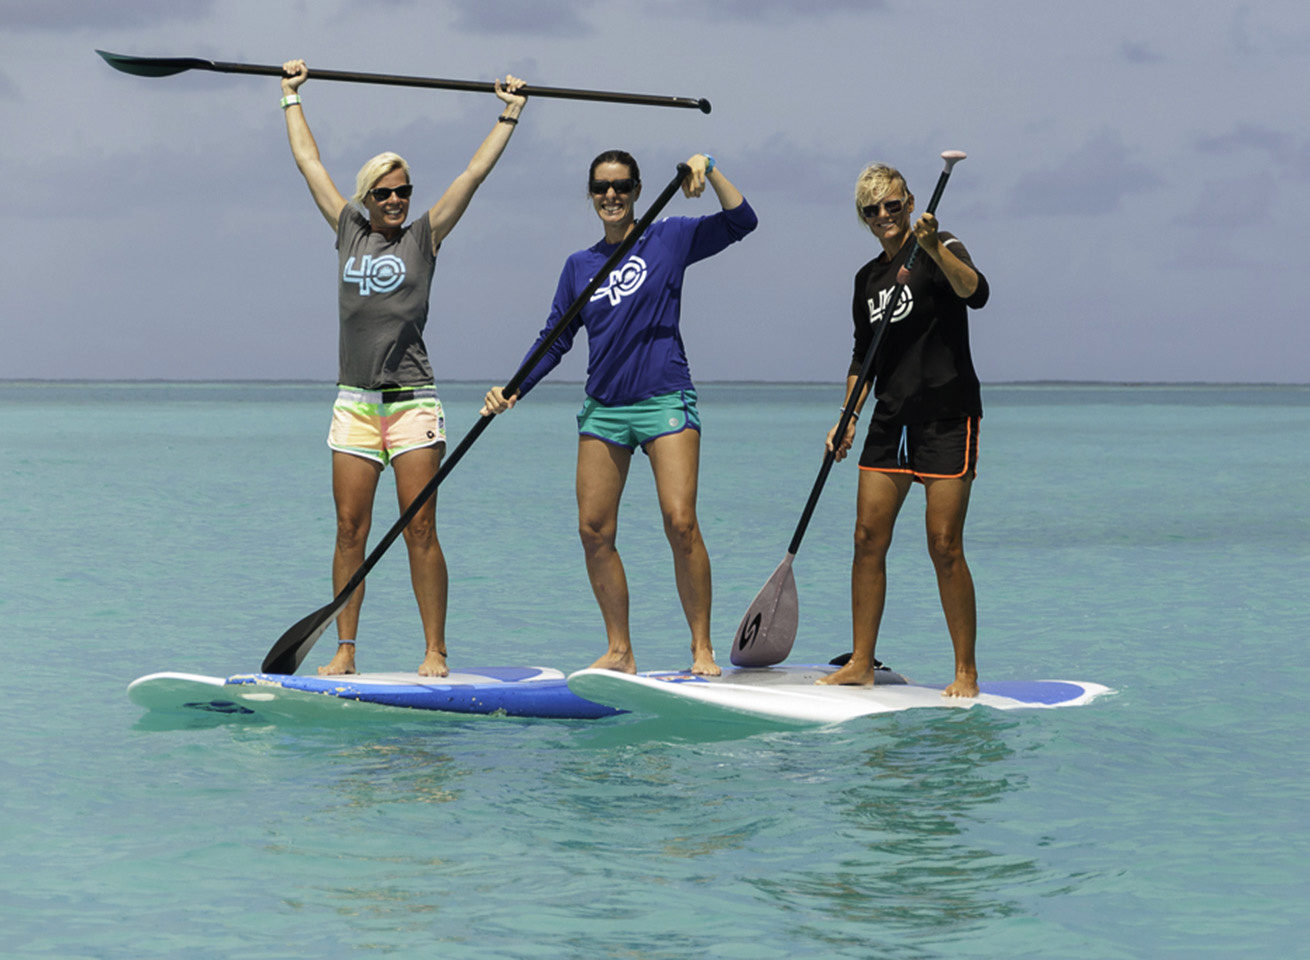 sup lesson in the caribbean